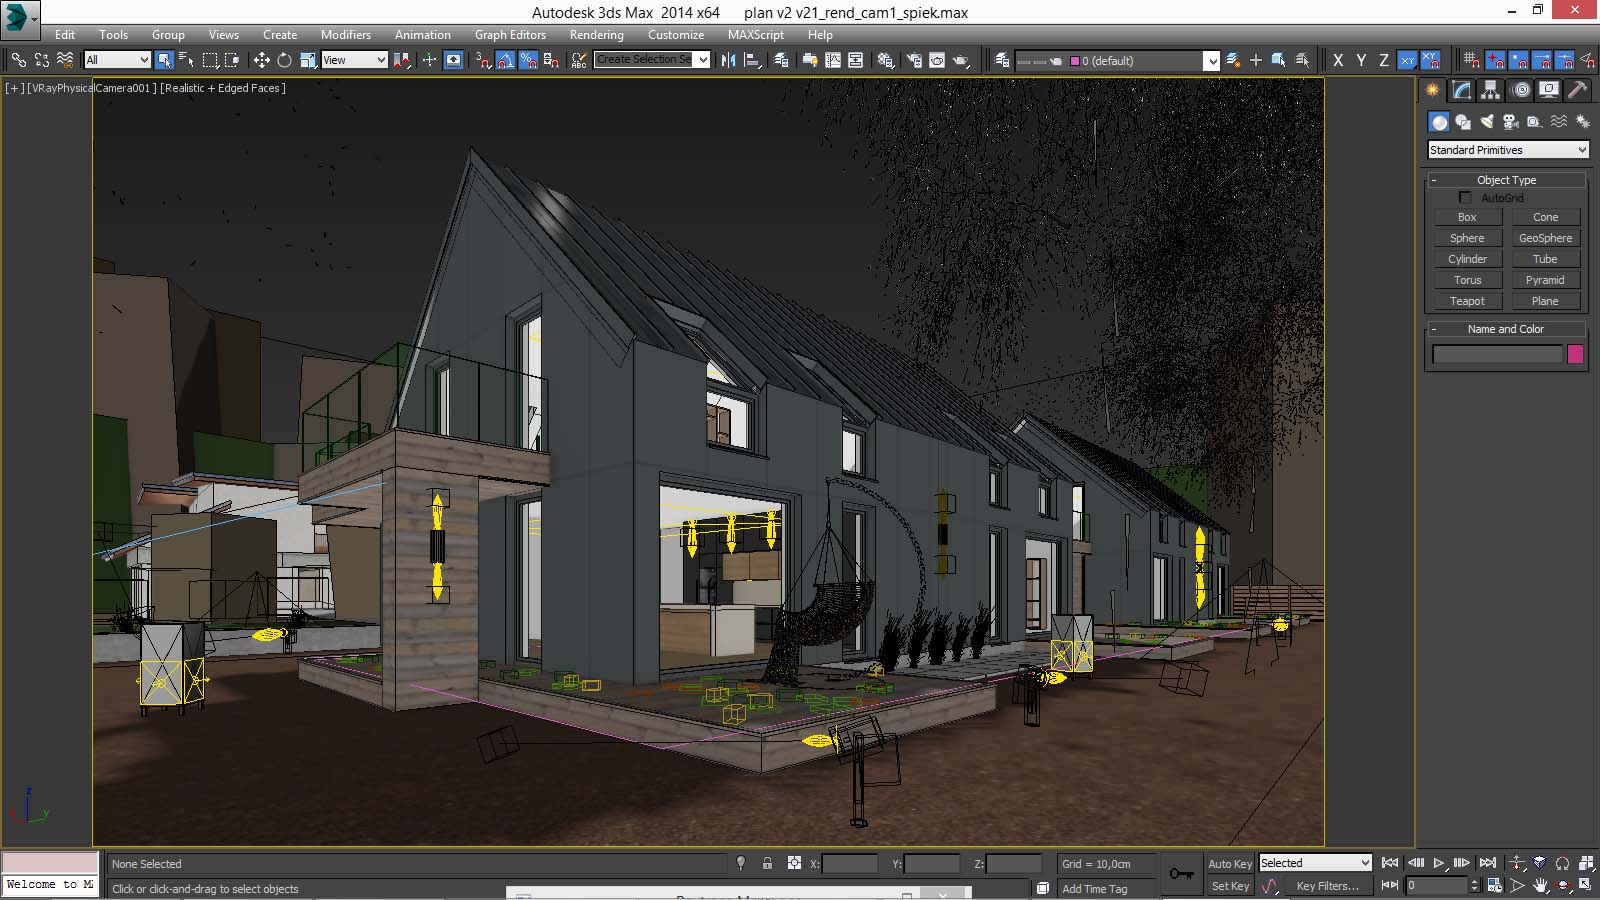 vray for 3d max 2014